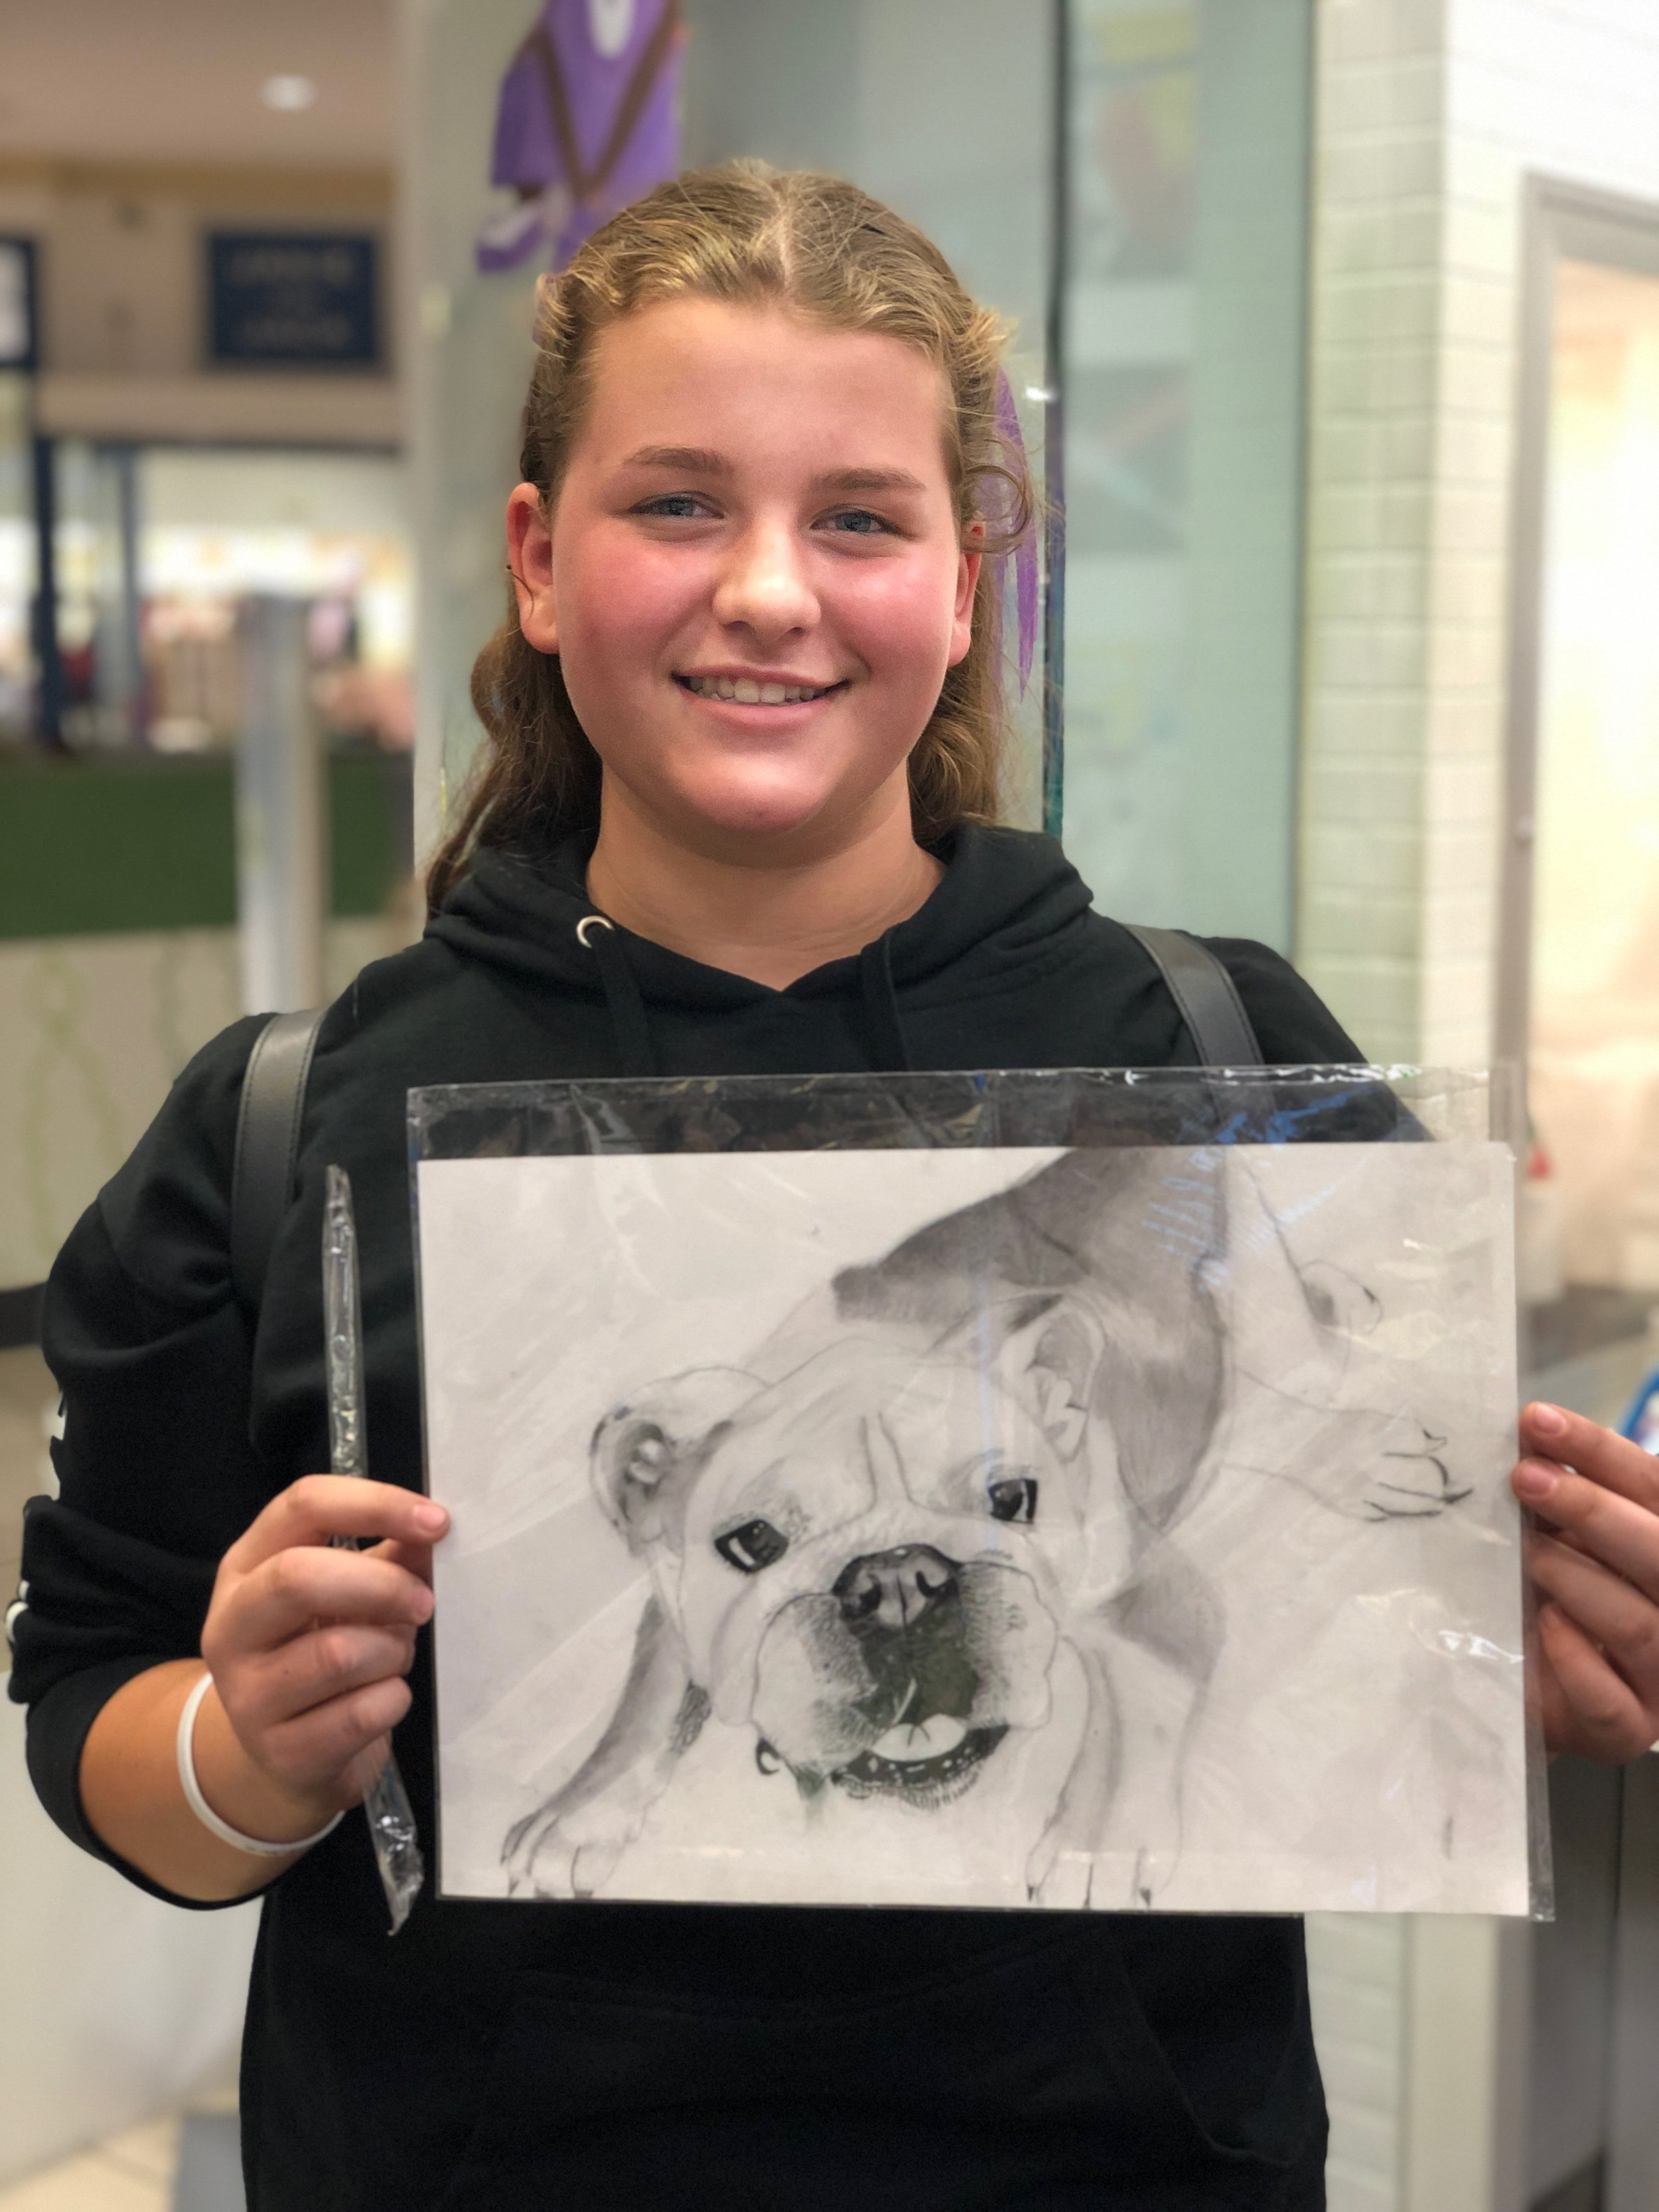 Student holding their drawing.